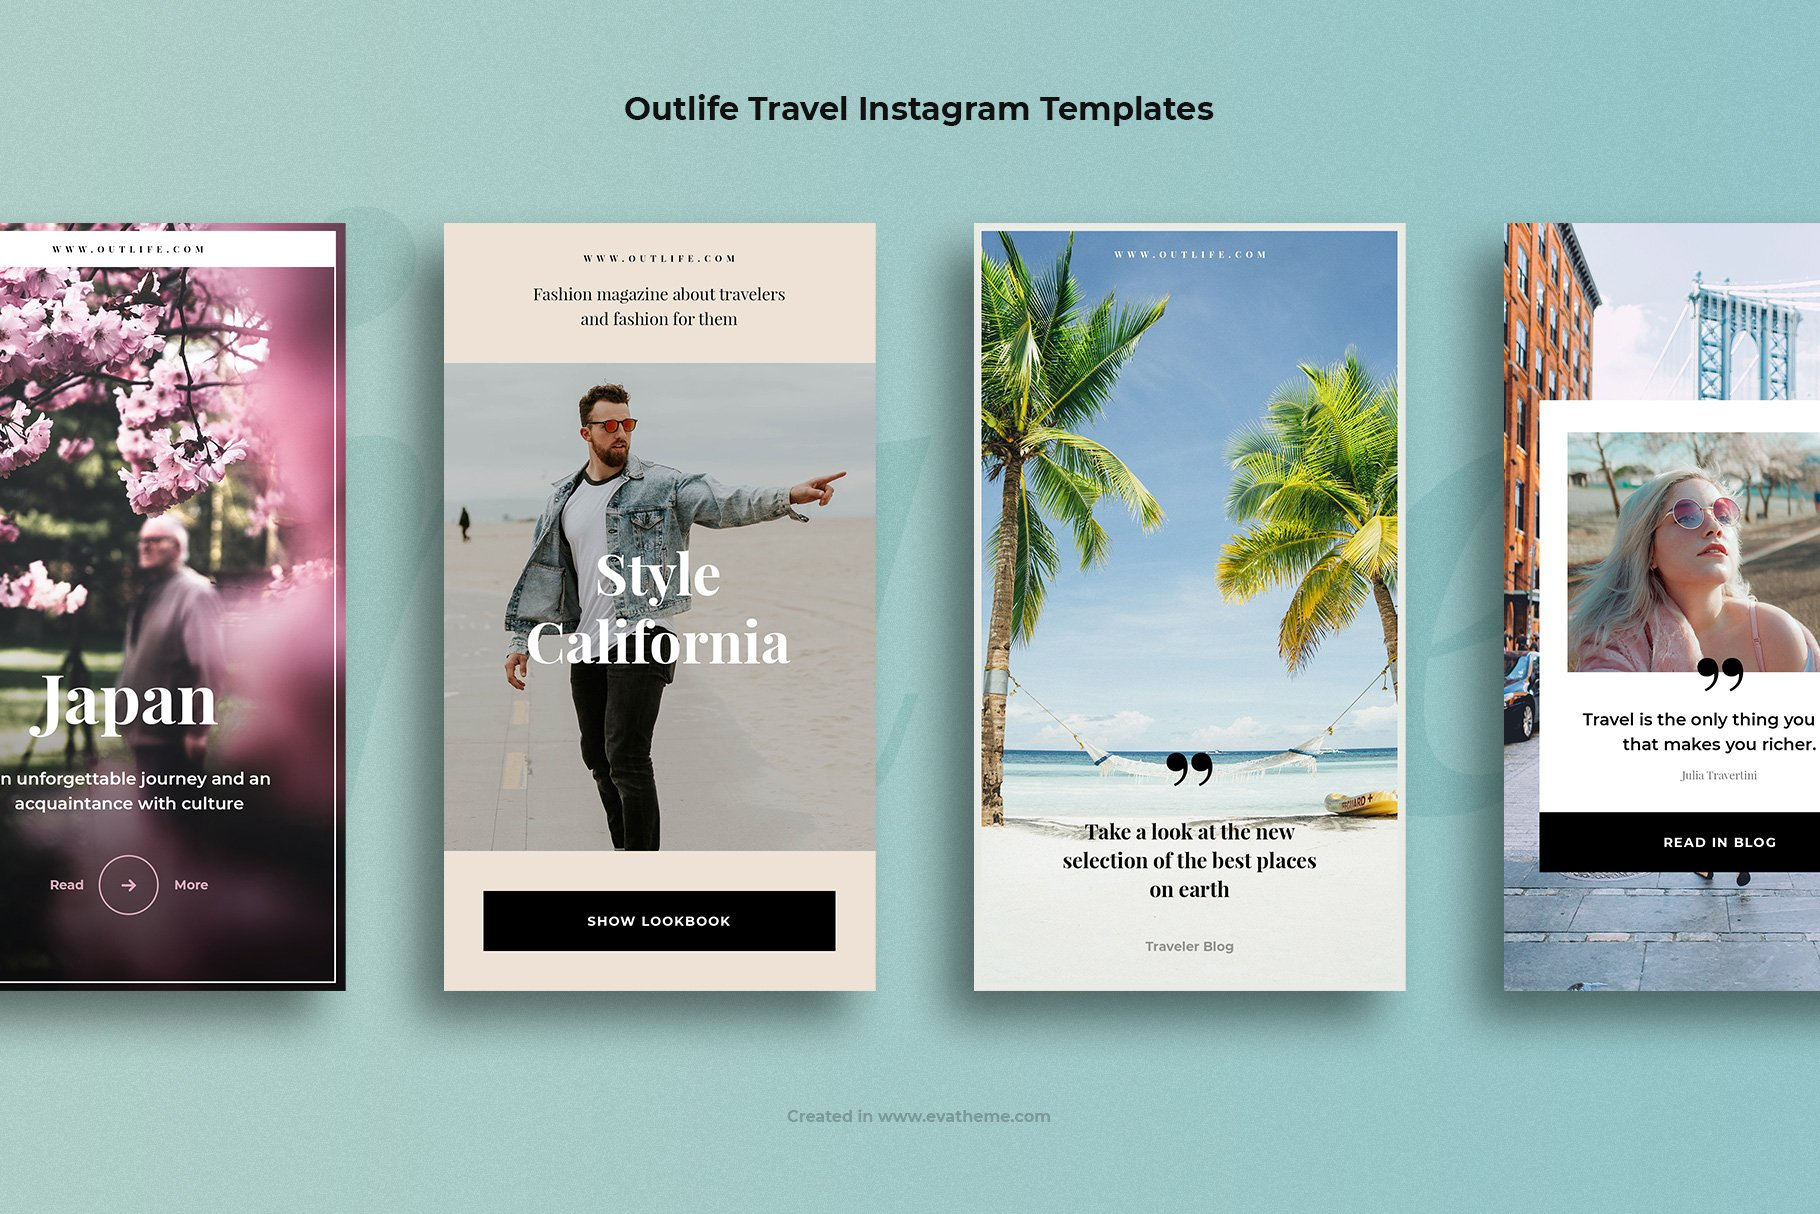 Outlife Travel Instagram Templates example image 3